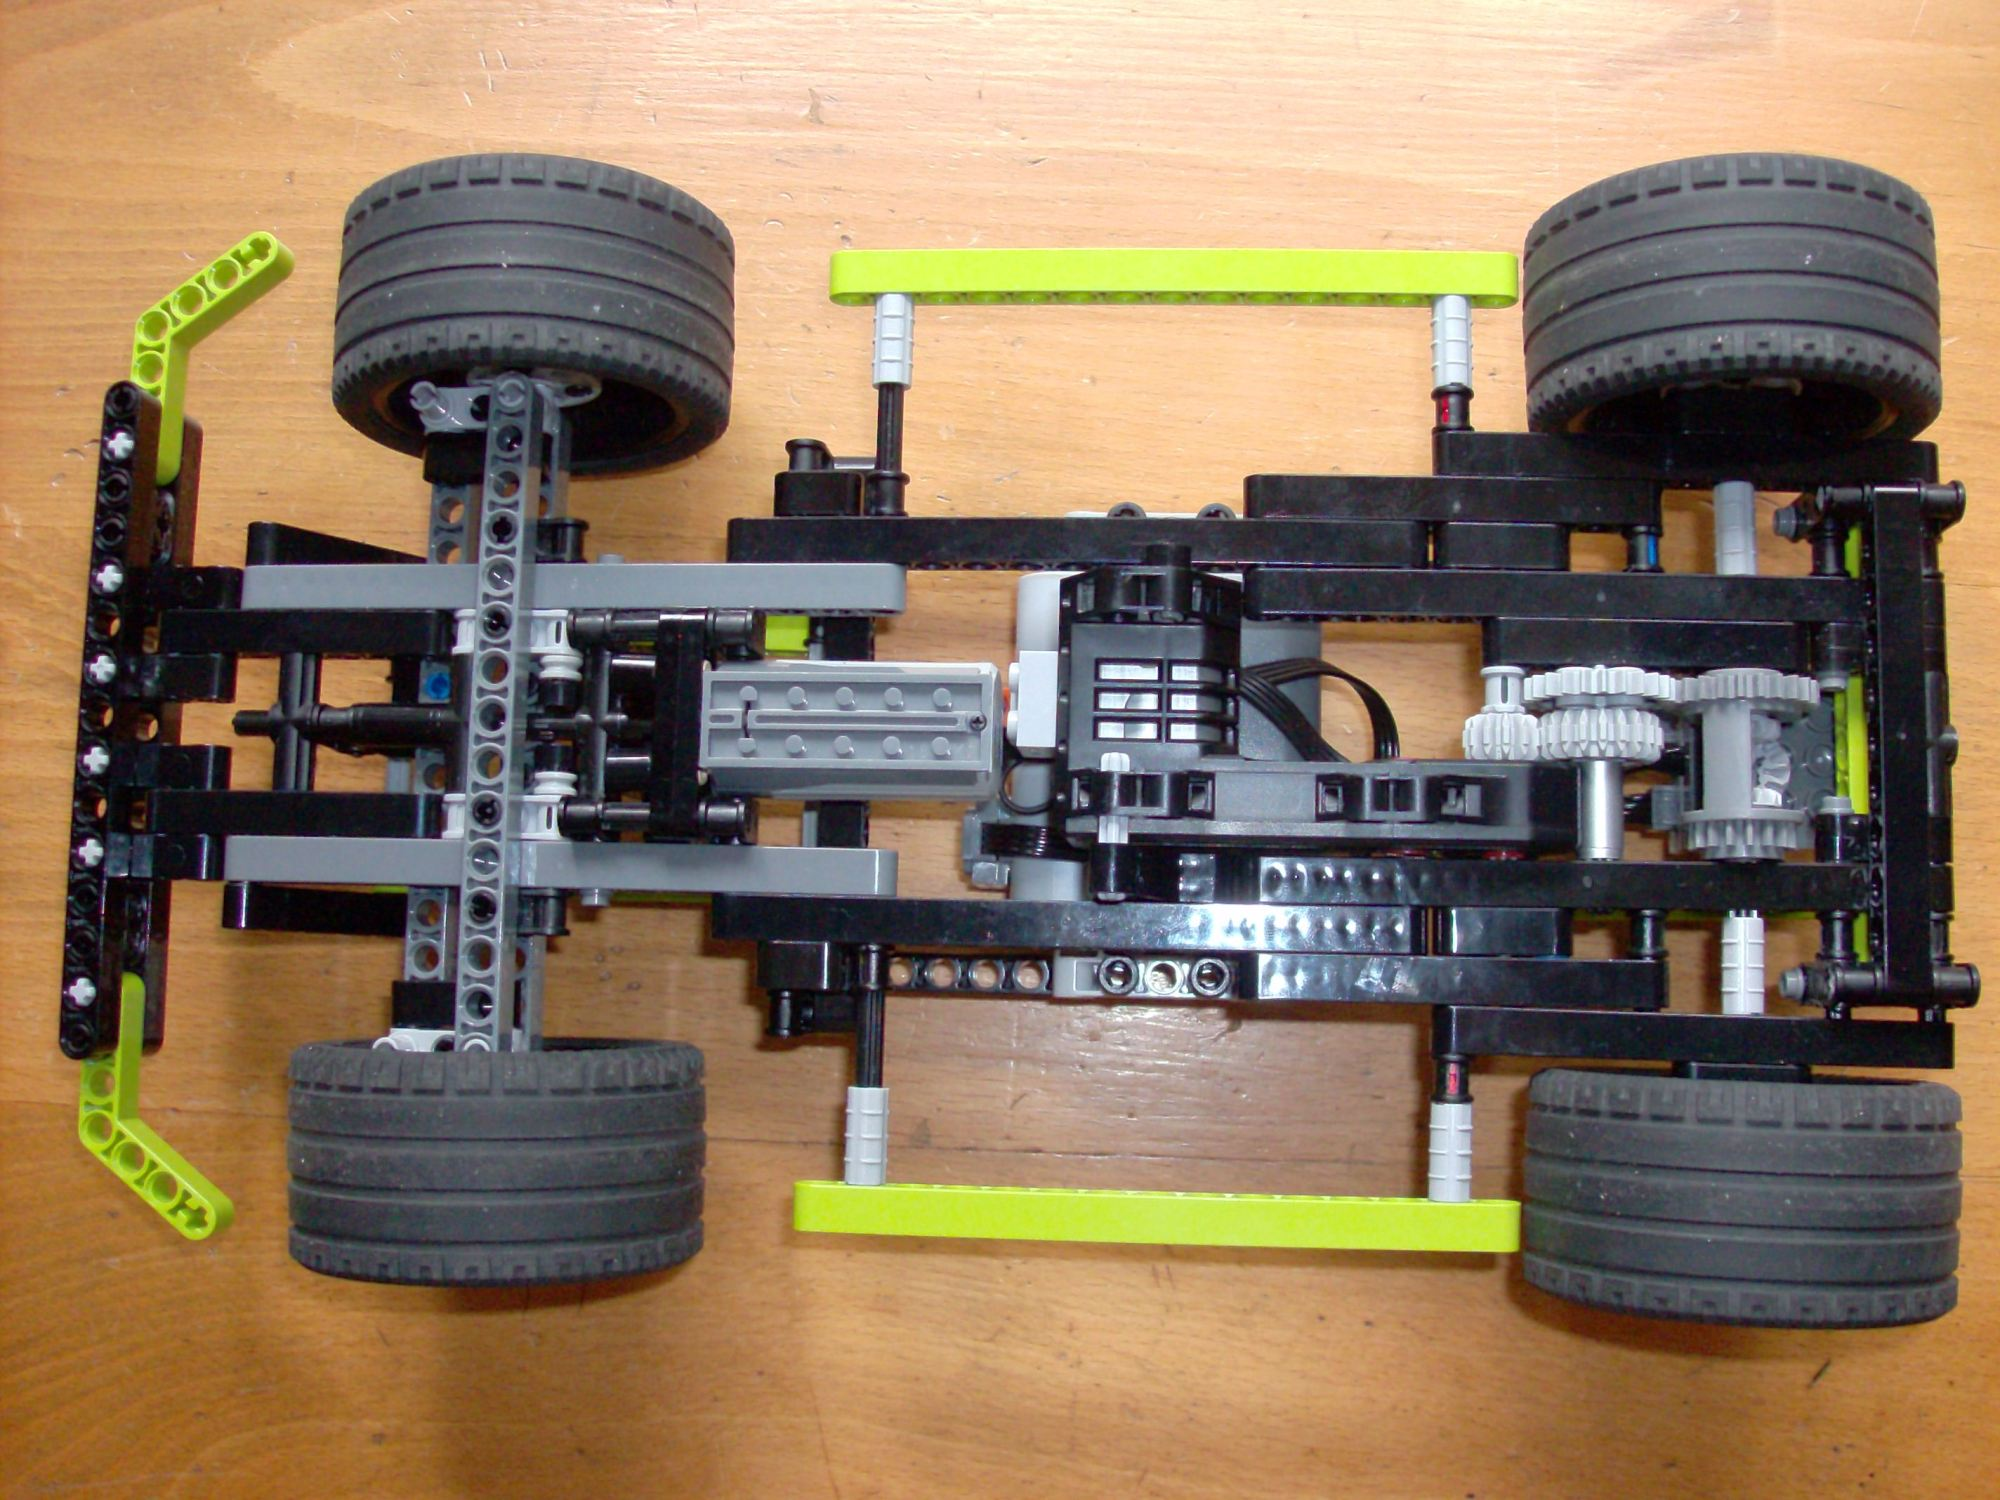 Build Rc Car >> Sheepo S Garage Advices To Build A Competitive Rc Car Part